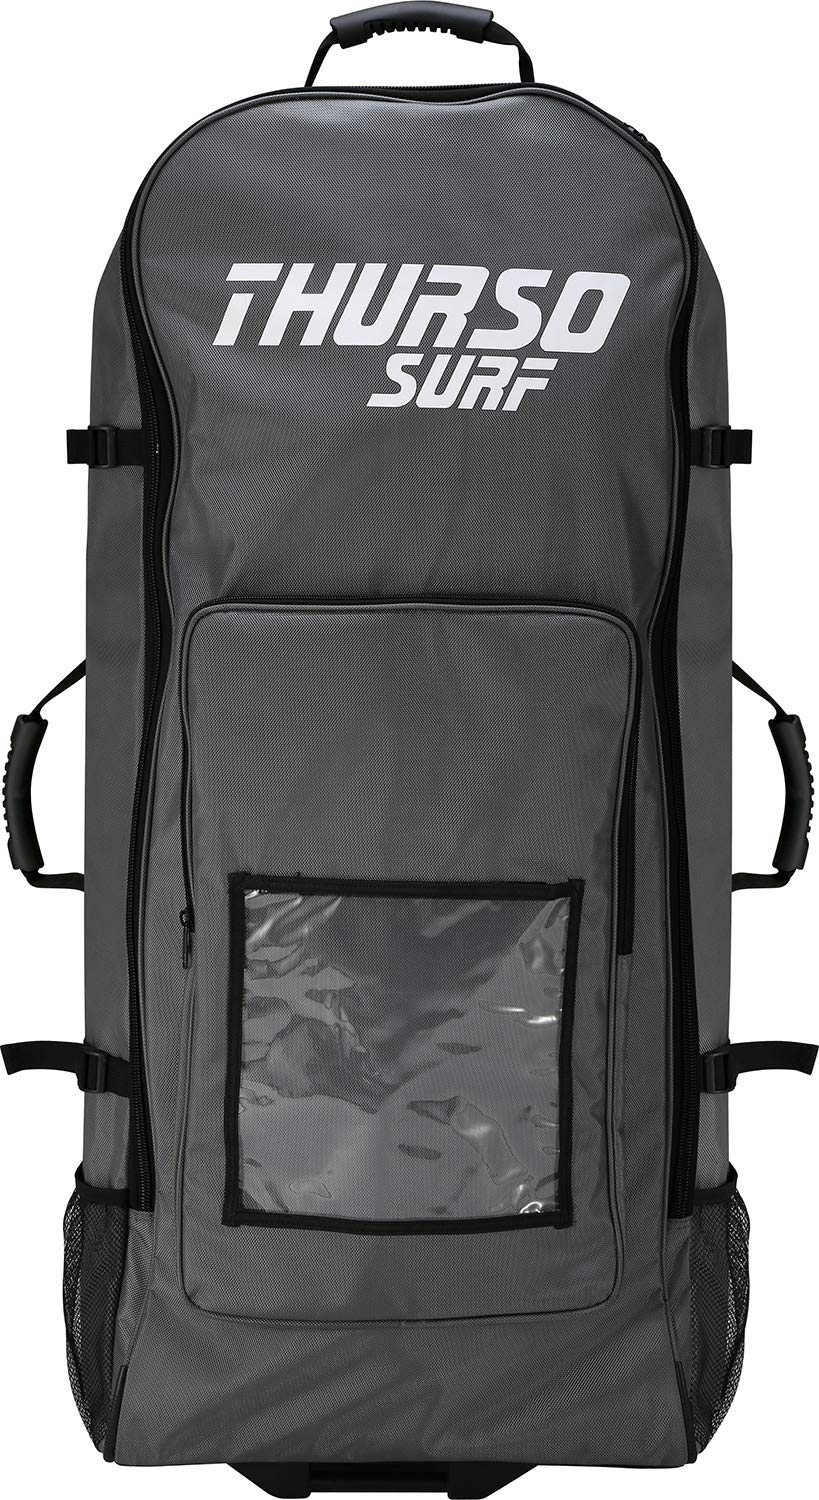 THURSO SURF Inflatable Paddle Board Carrying Bag SUP Roller Backpack Fits Any iSUP Up to 12'6 and Accessories Super Durable Comfortable Convenient